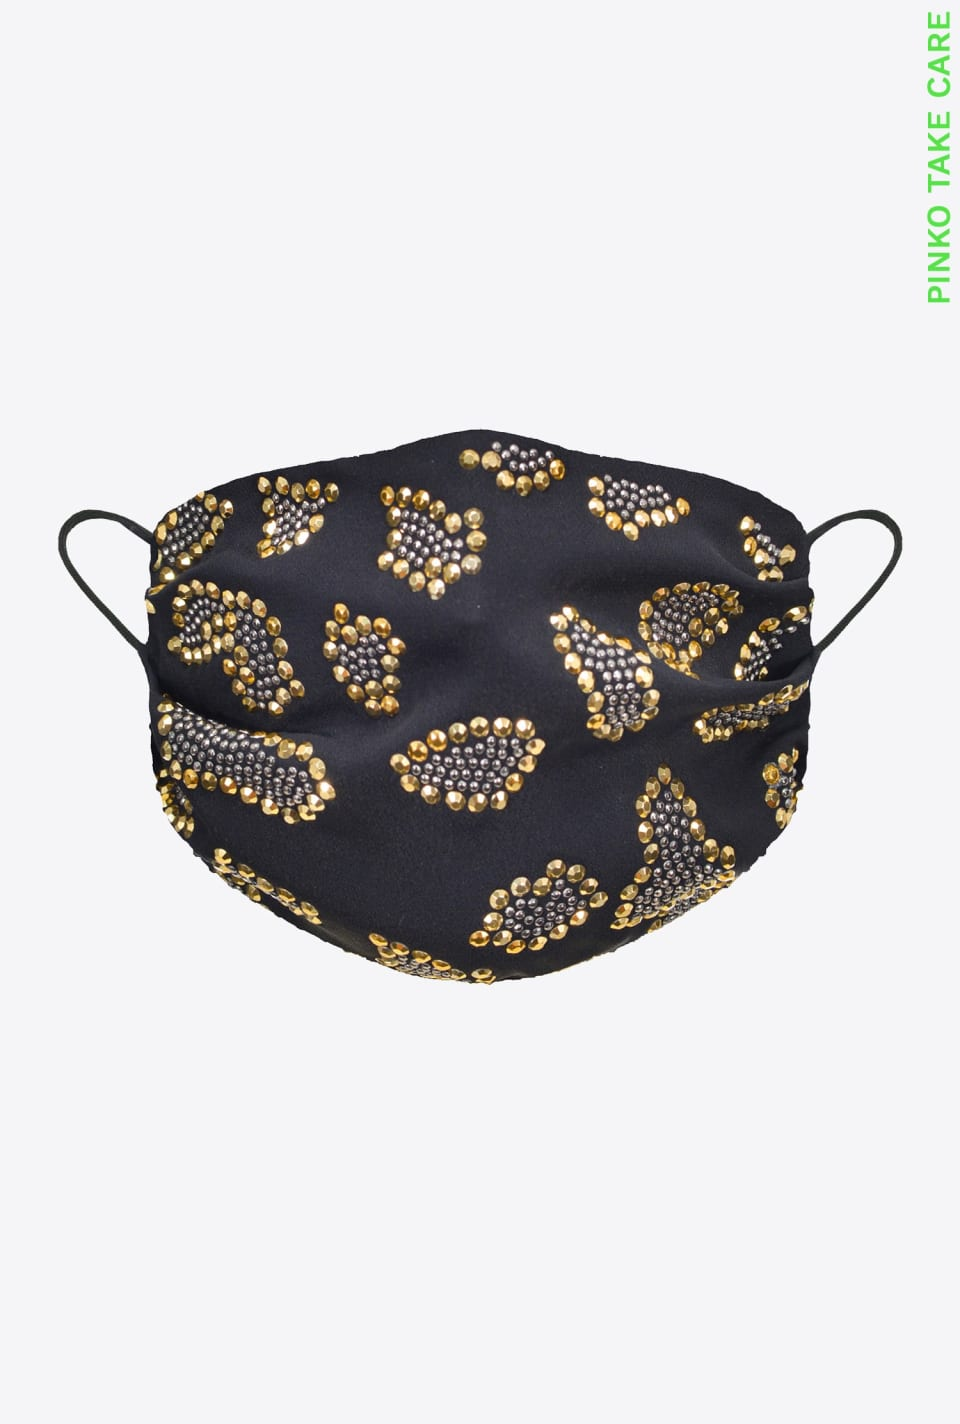 REIMAGINE rhinestone-spotted face mask - Pinko